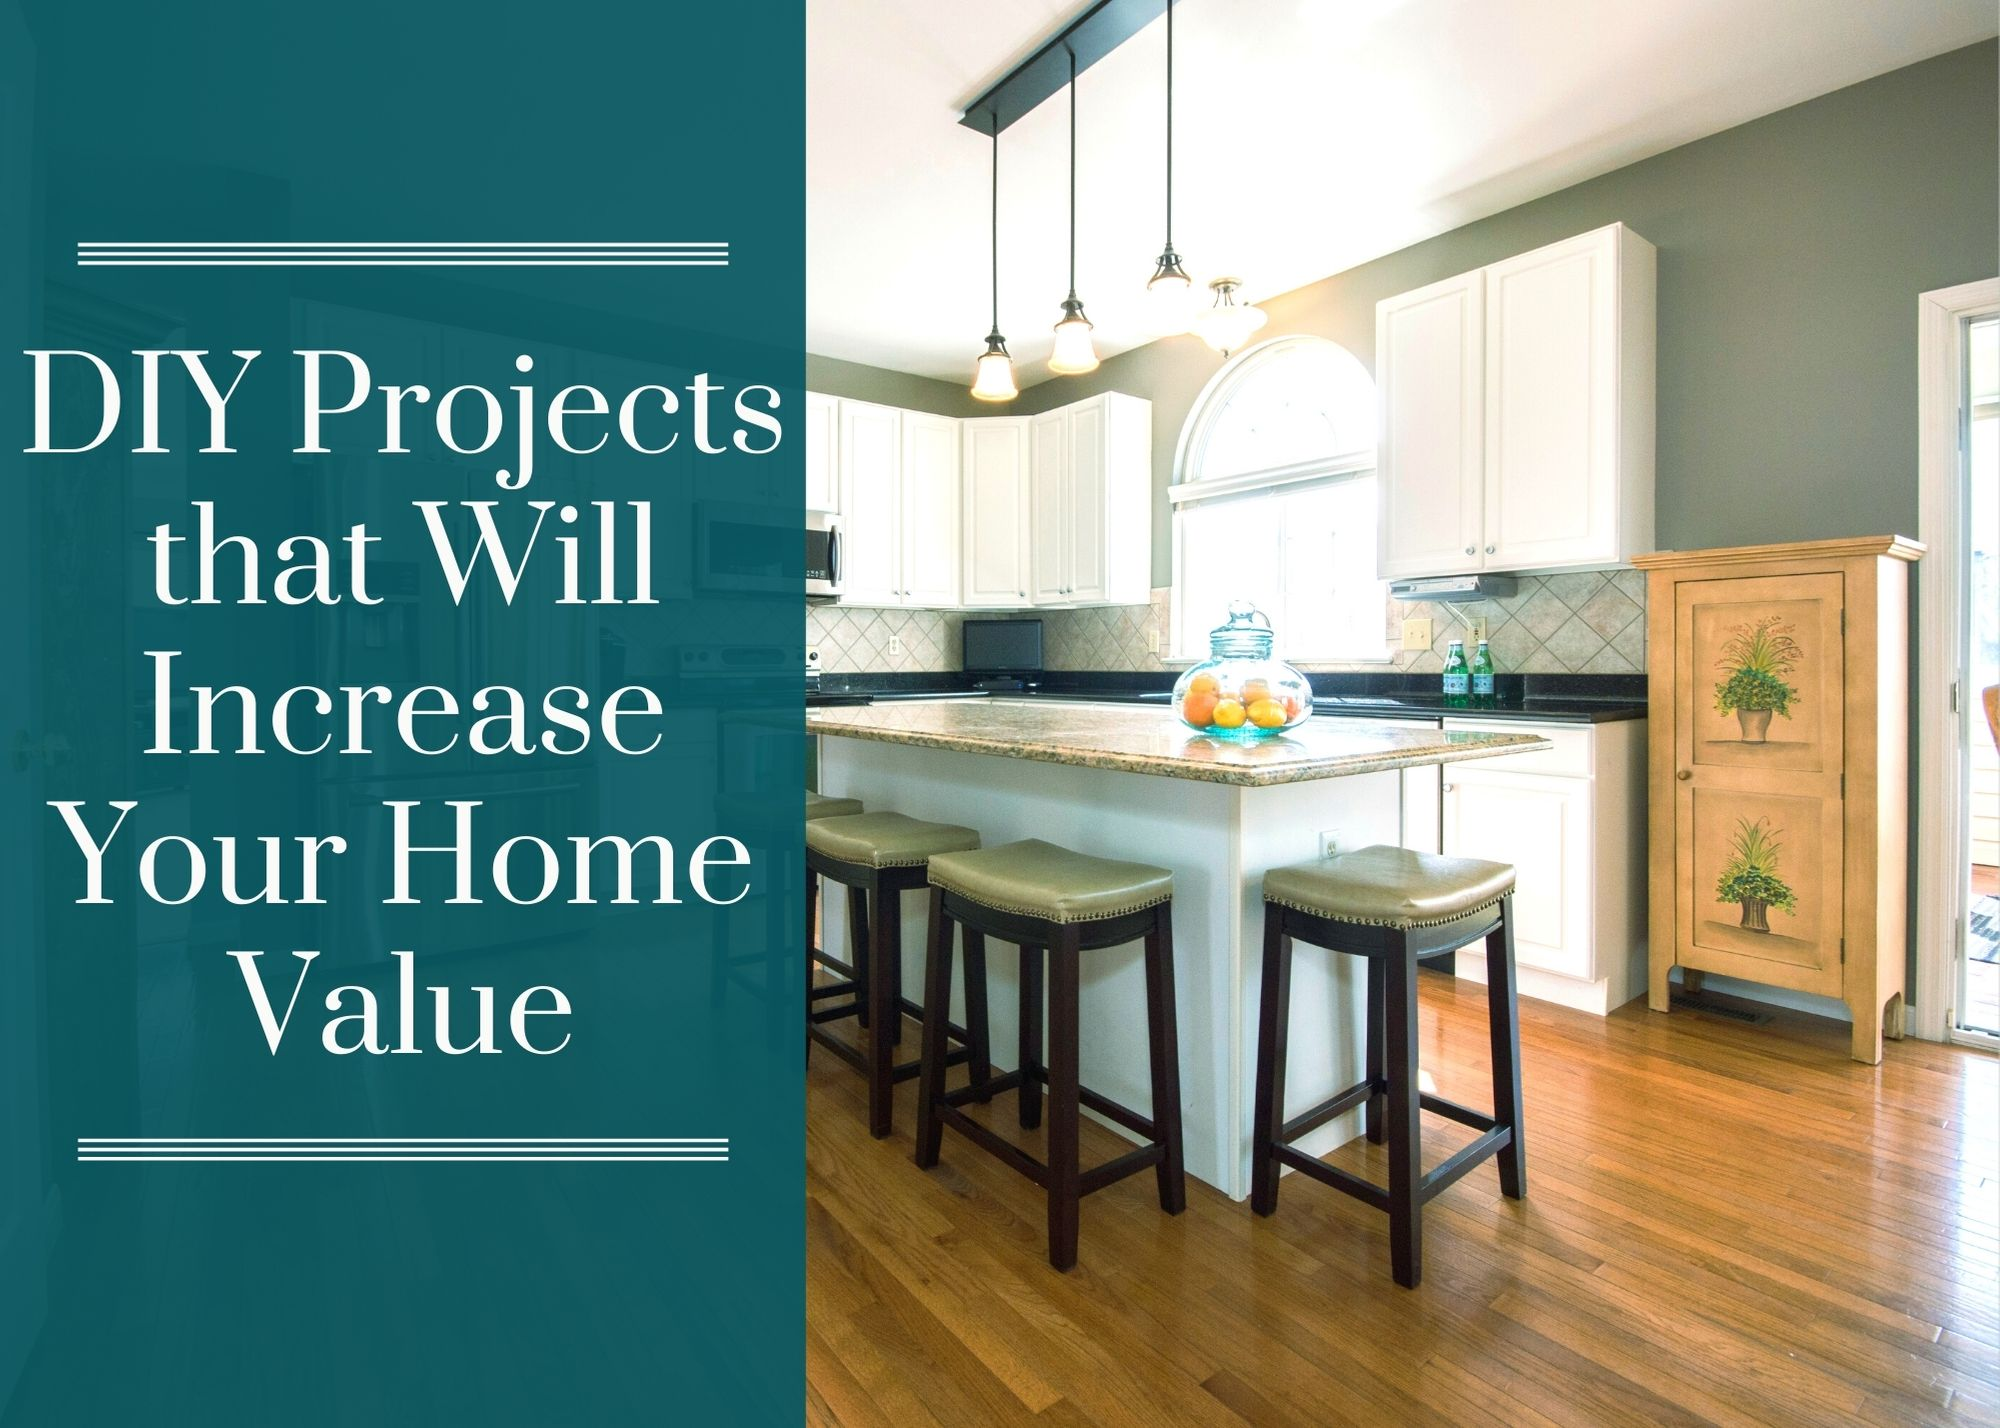 DIY Projects that Will Increase Your Home Value